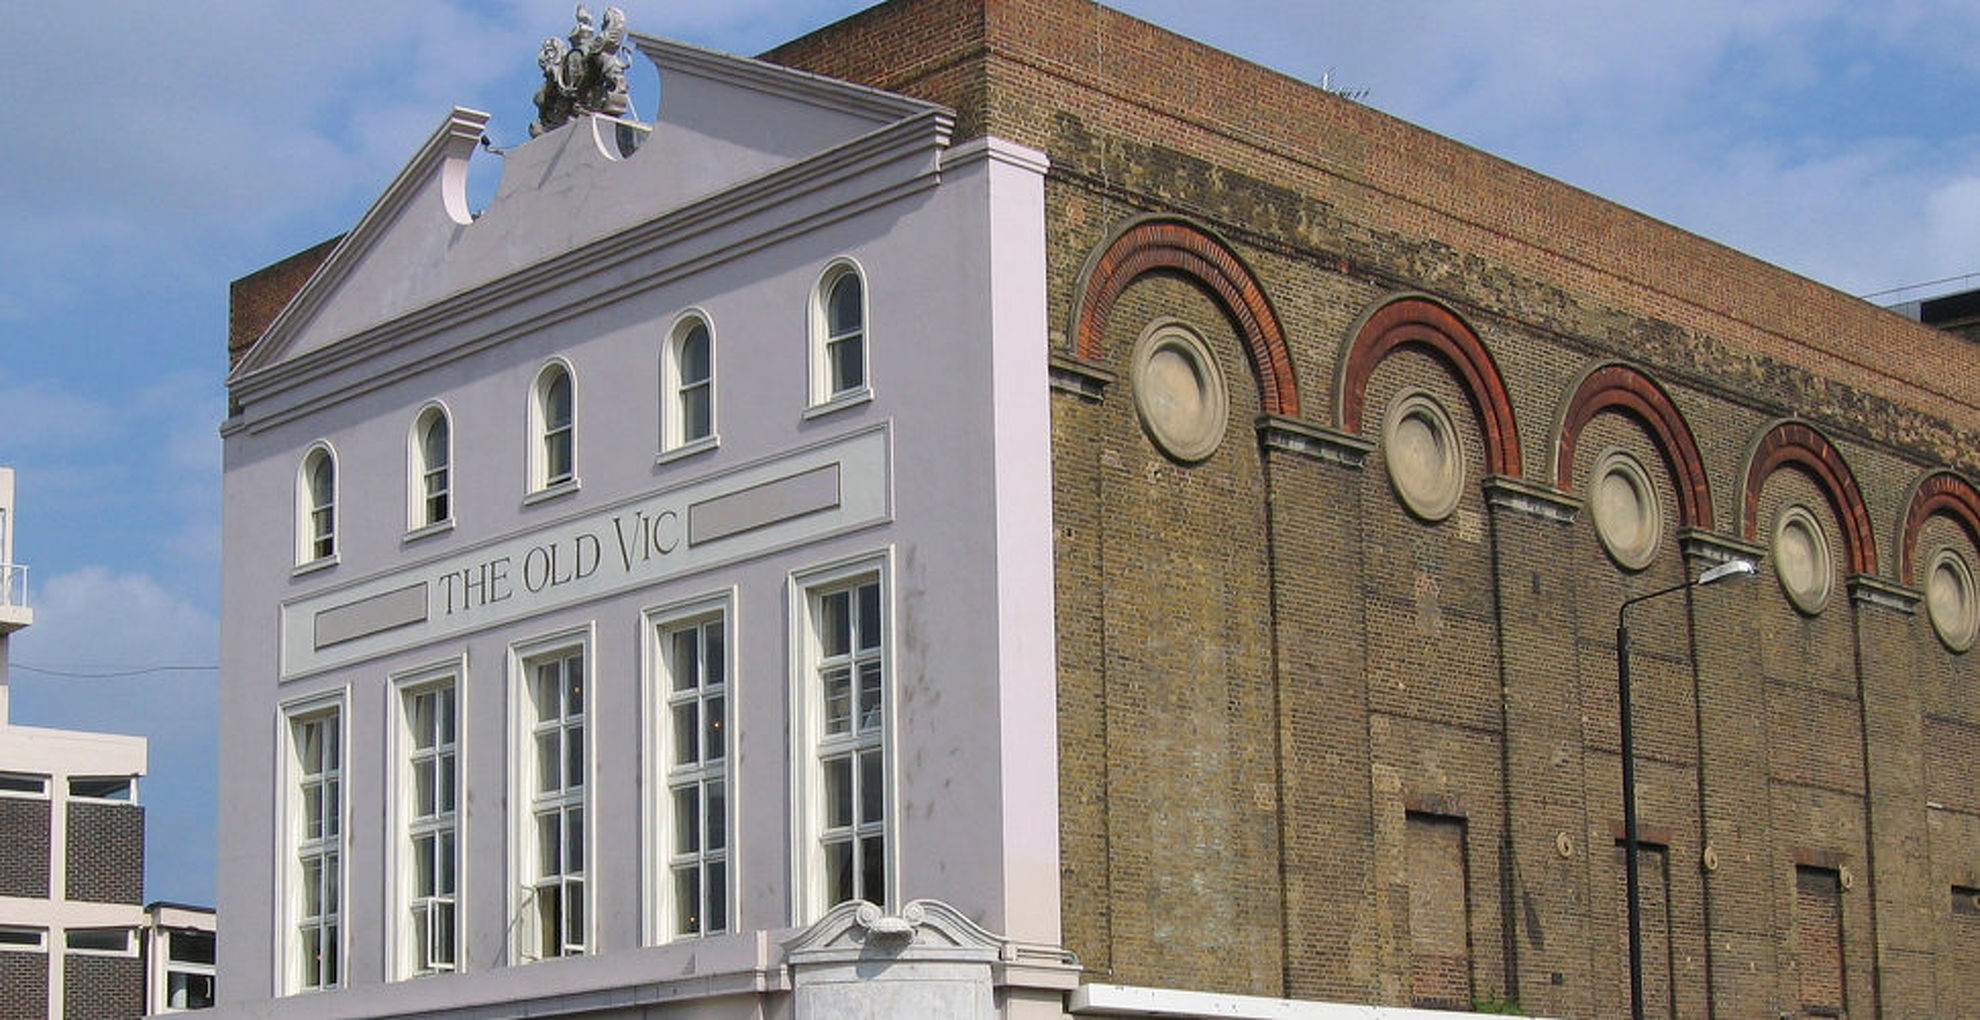 Explore The Old Vic